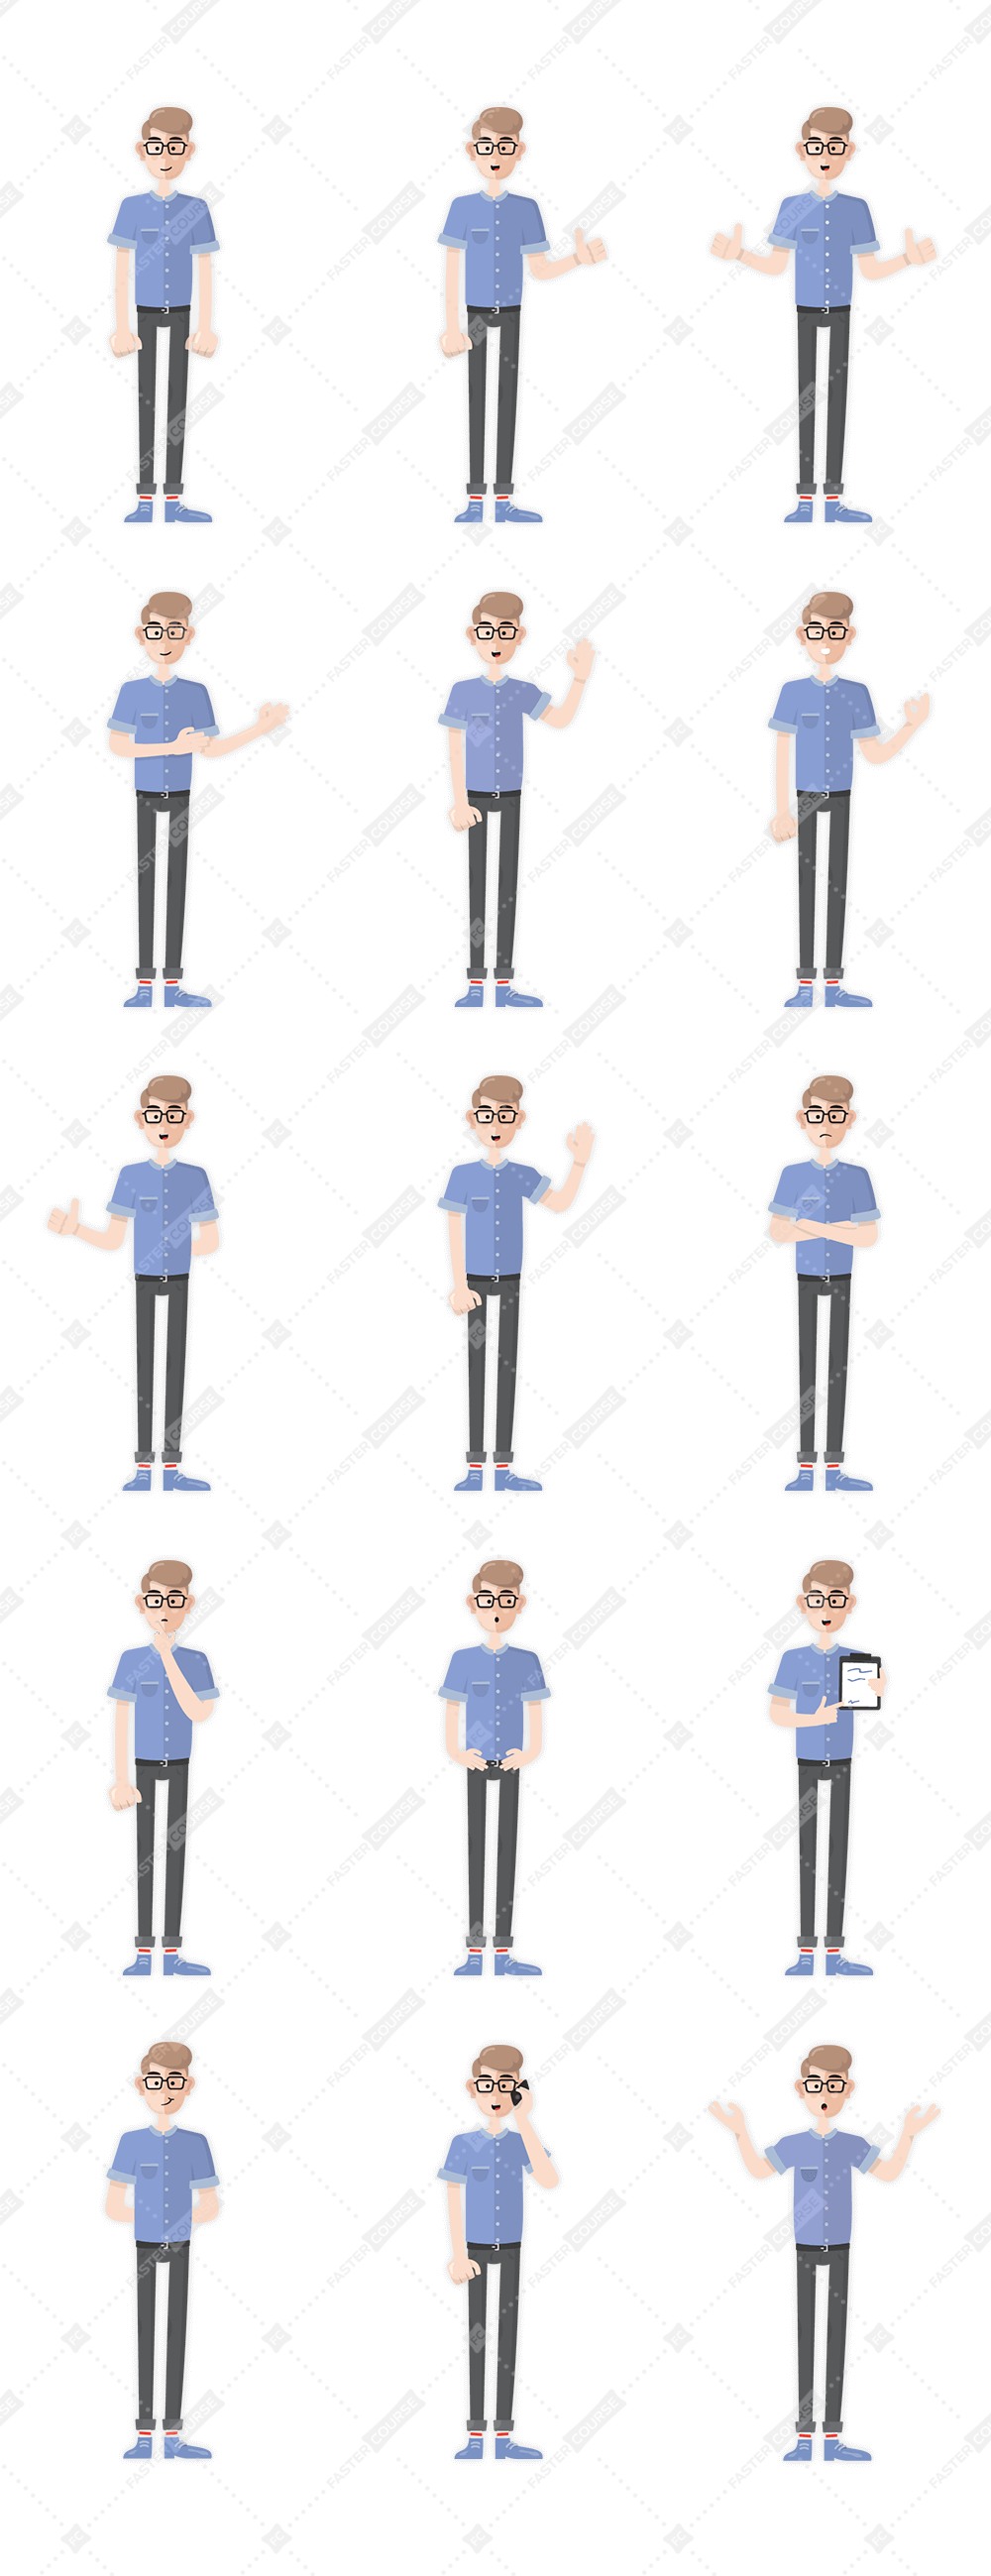 Characters_All_Poses_Office_John_wm